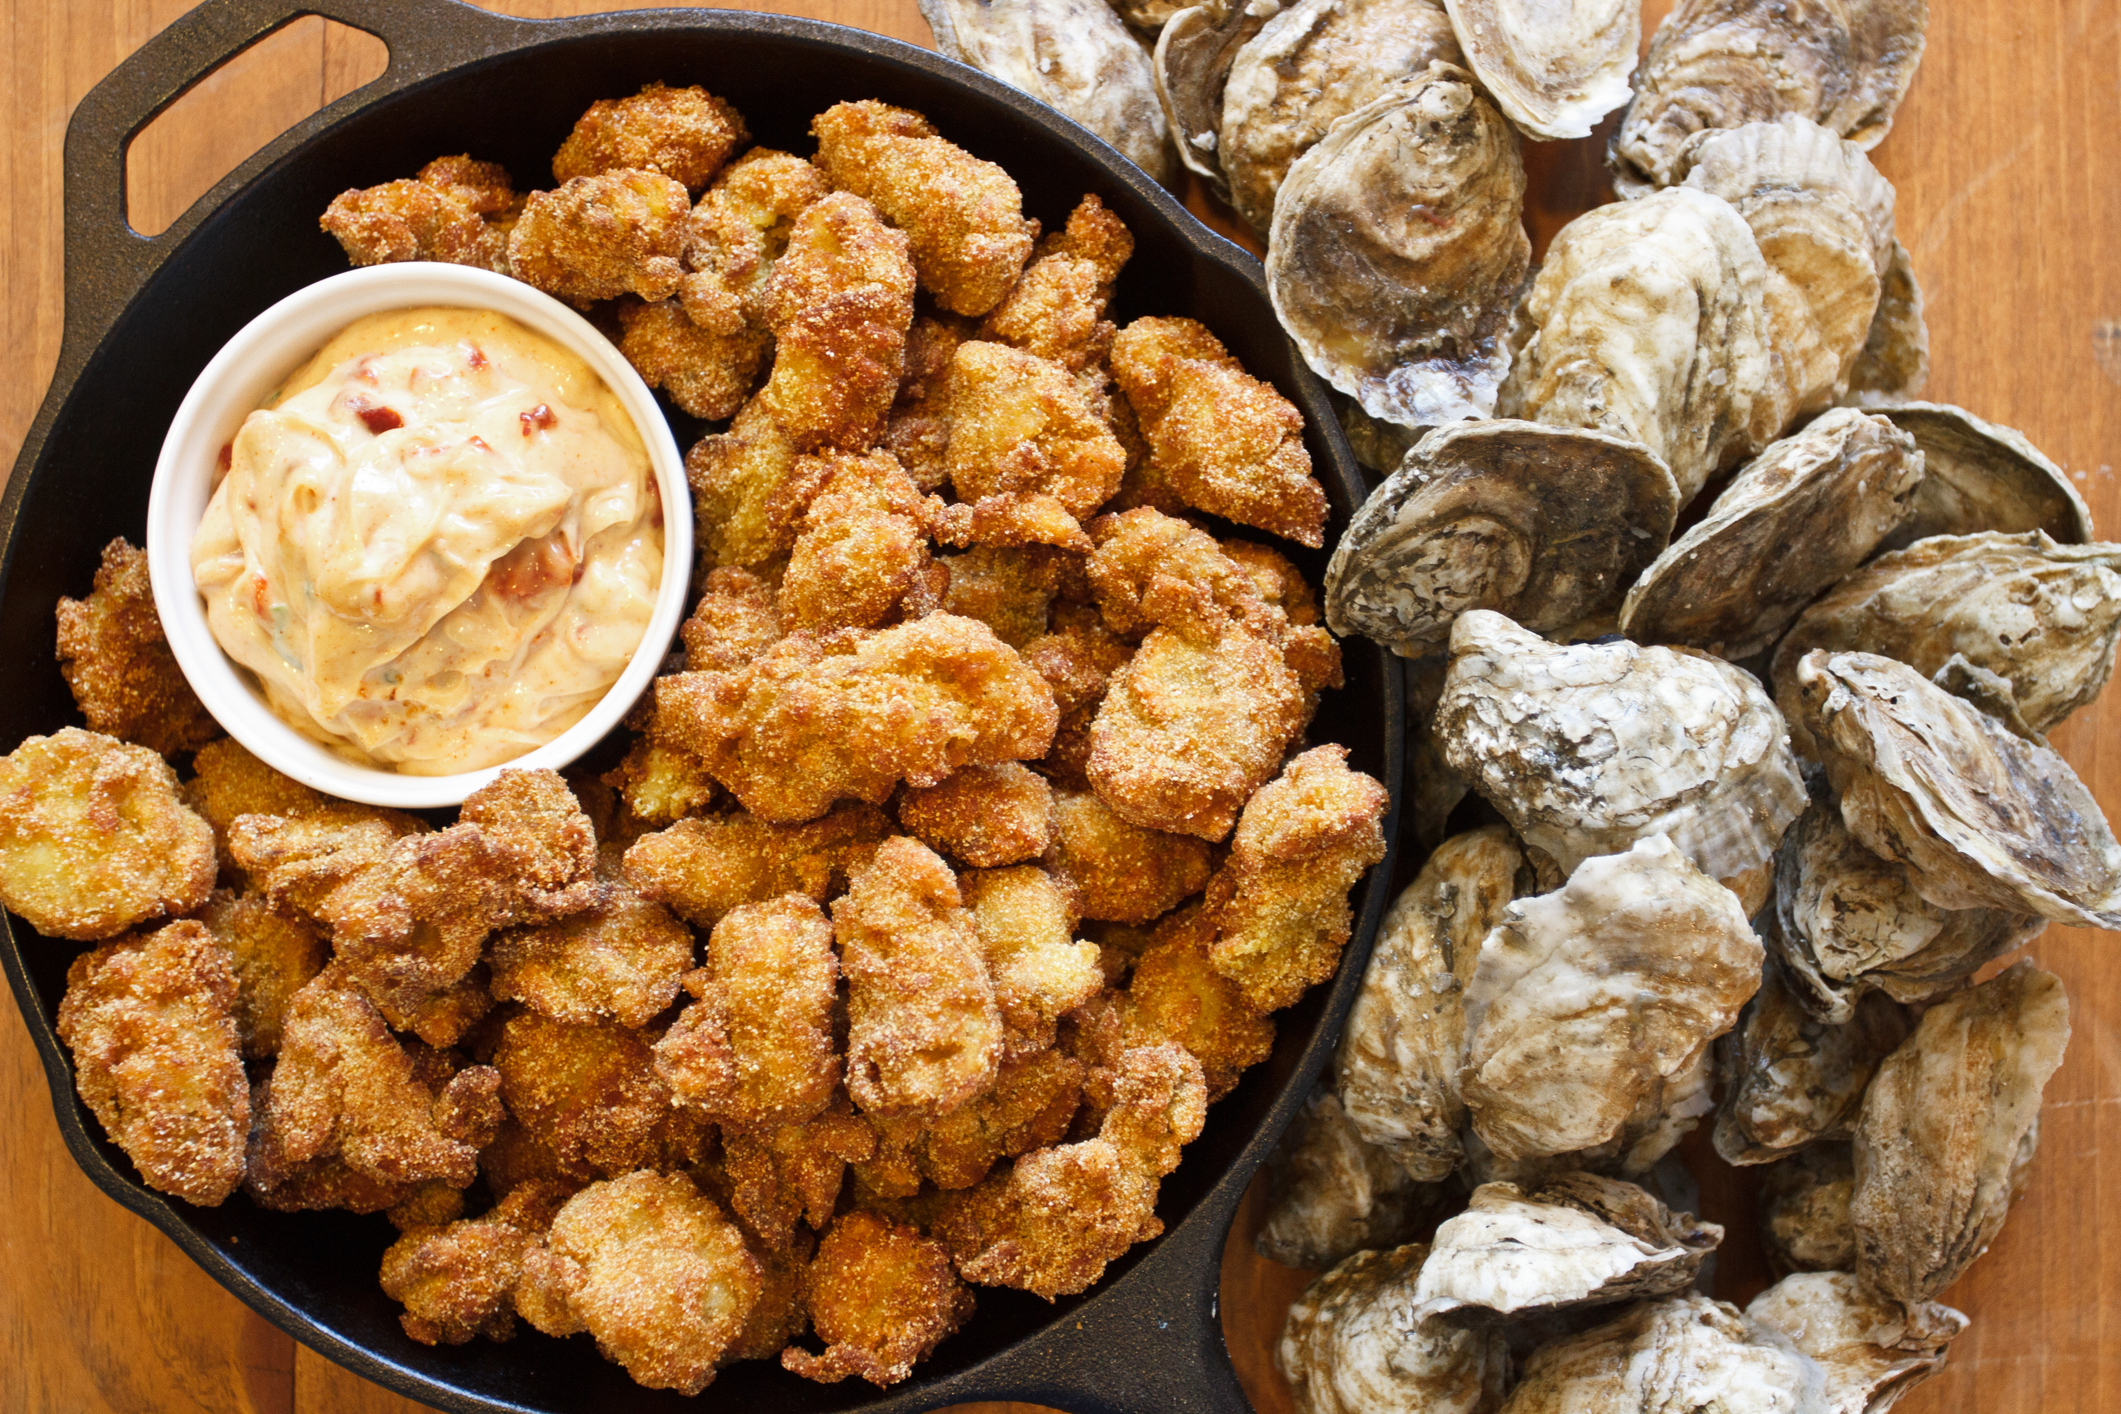 When are oysters in season in Charleston?